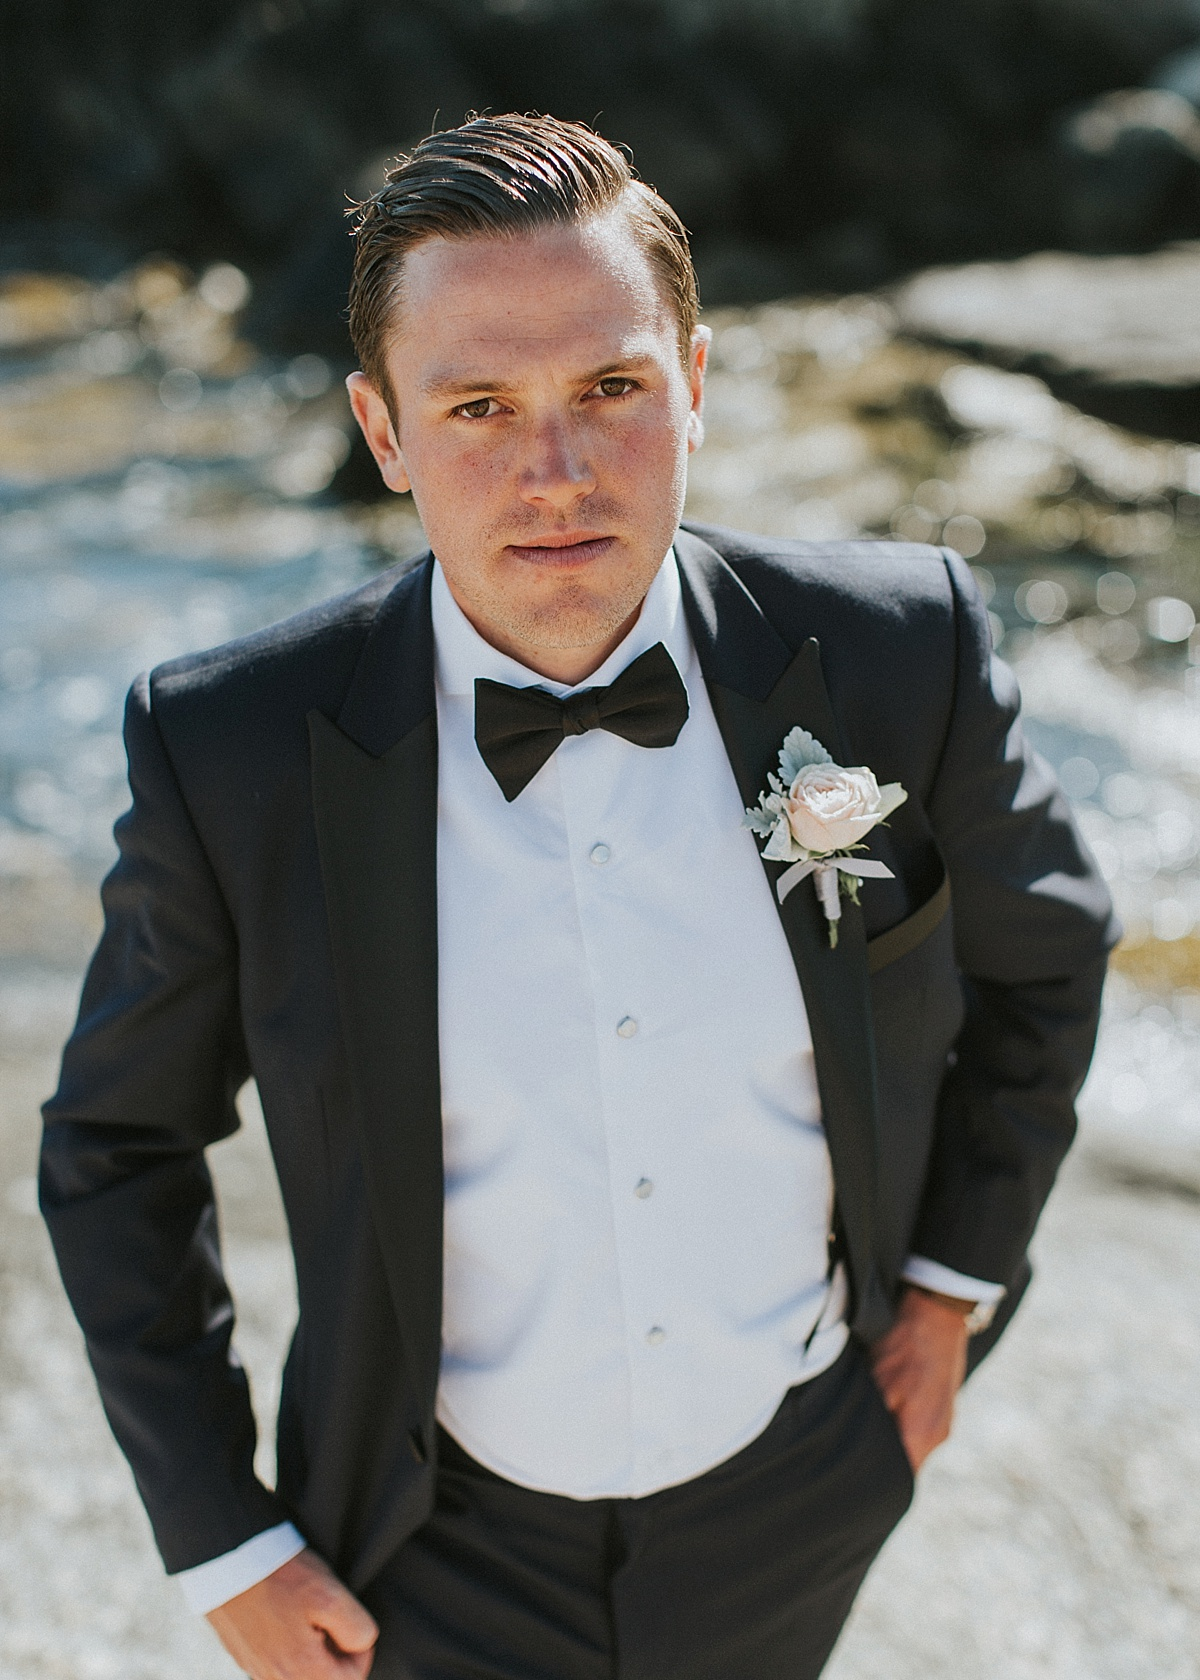 Newport groom photographs